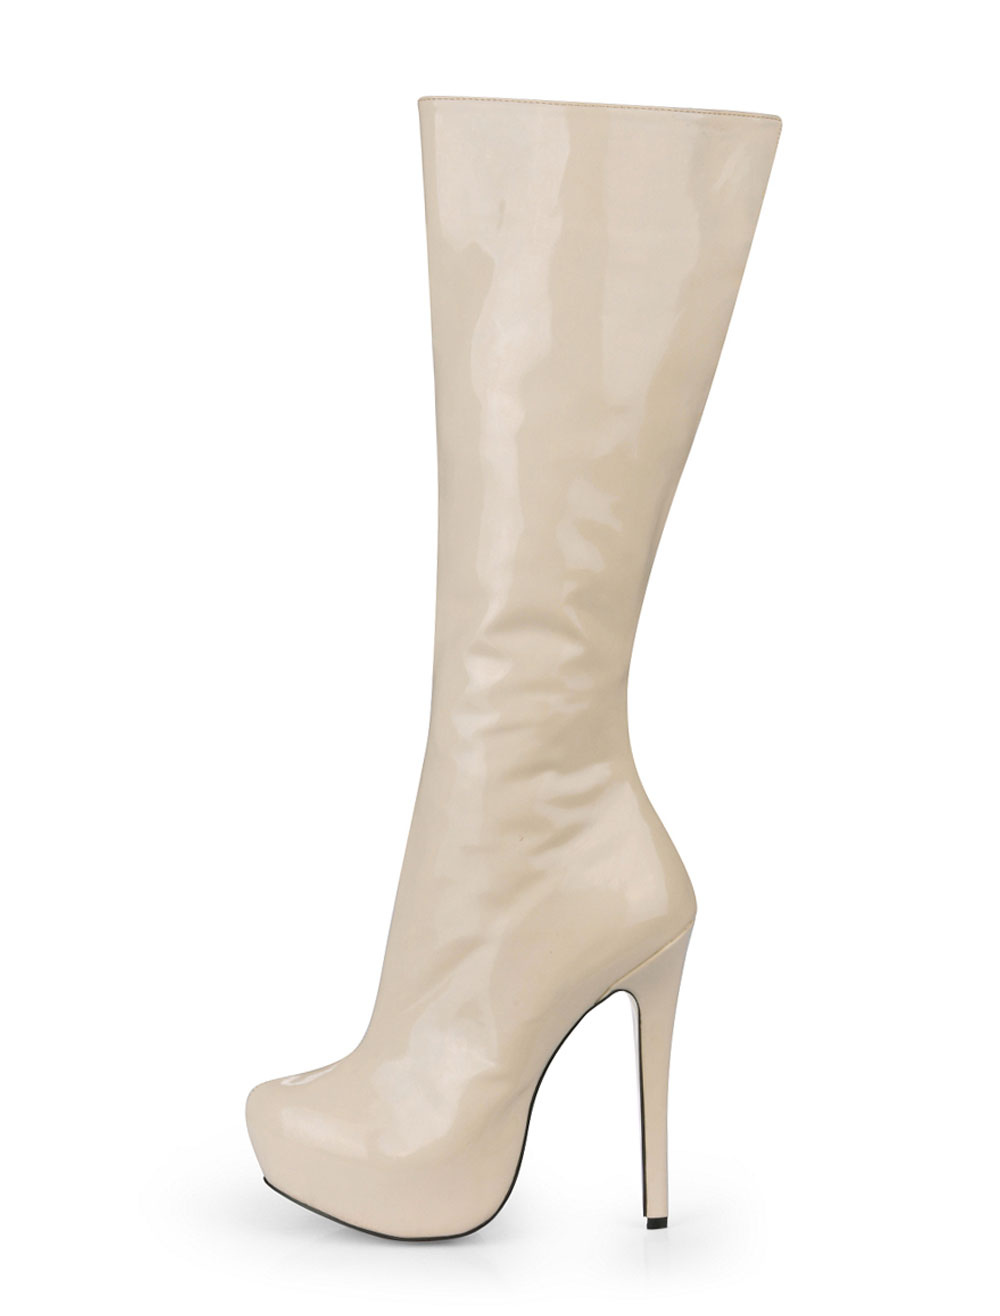 Ivory Almond Toe Patent Woman's Knee Length Boots